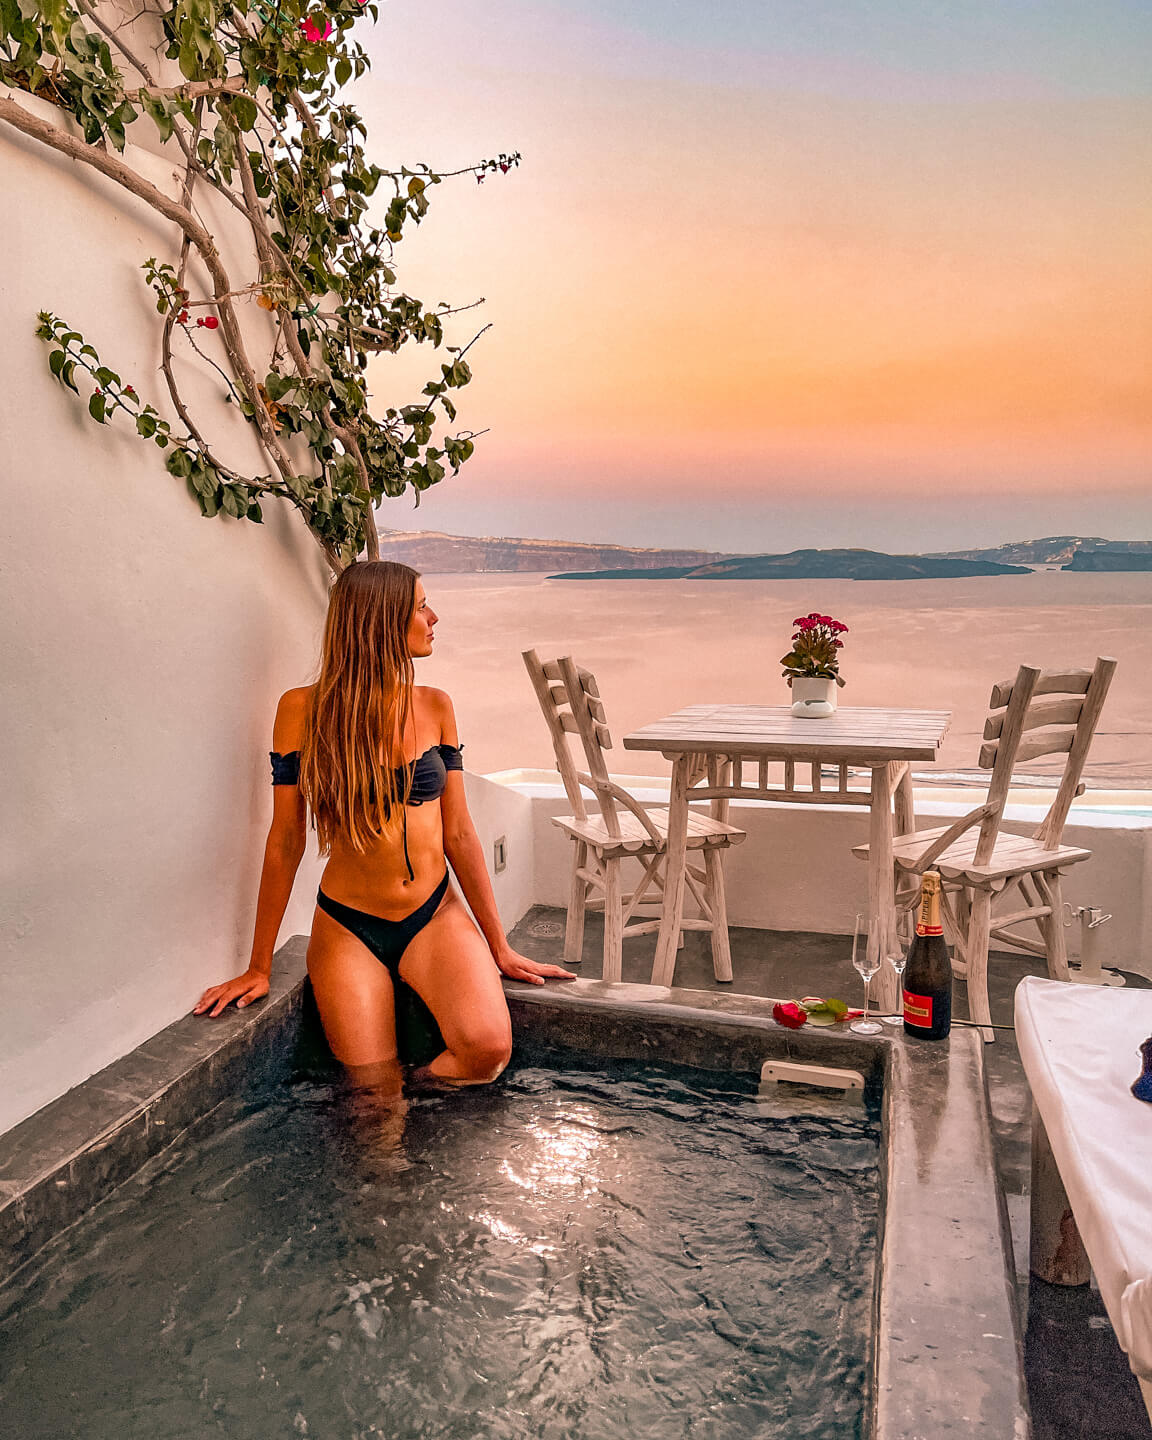 sunset view from private jacuzzi in suite in santorini, greece